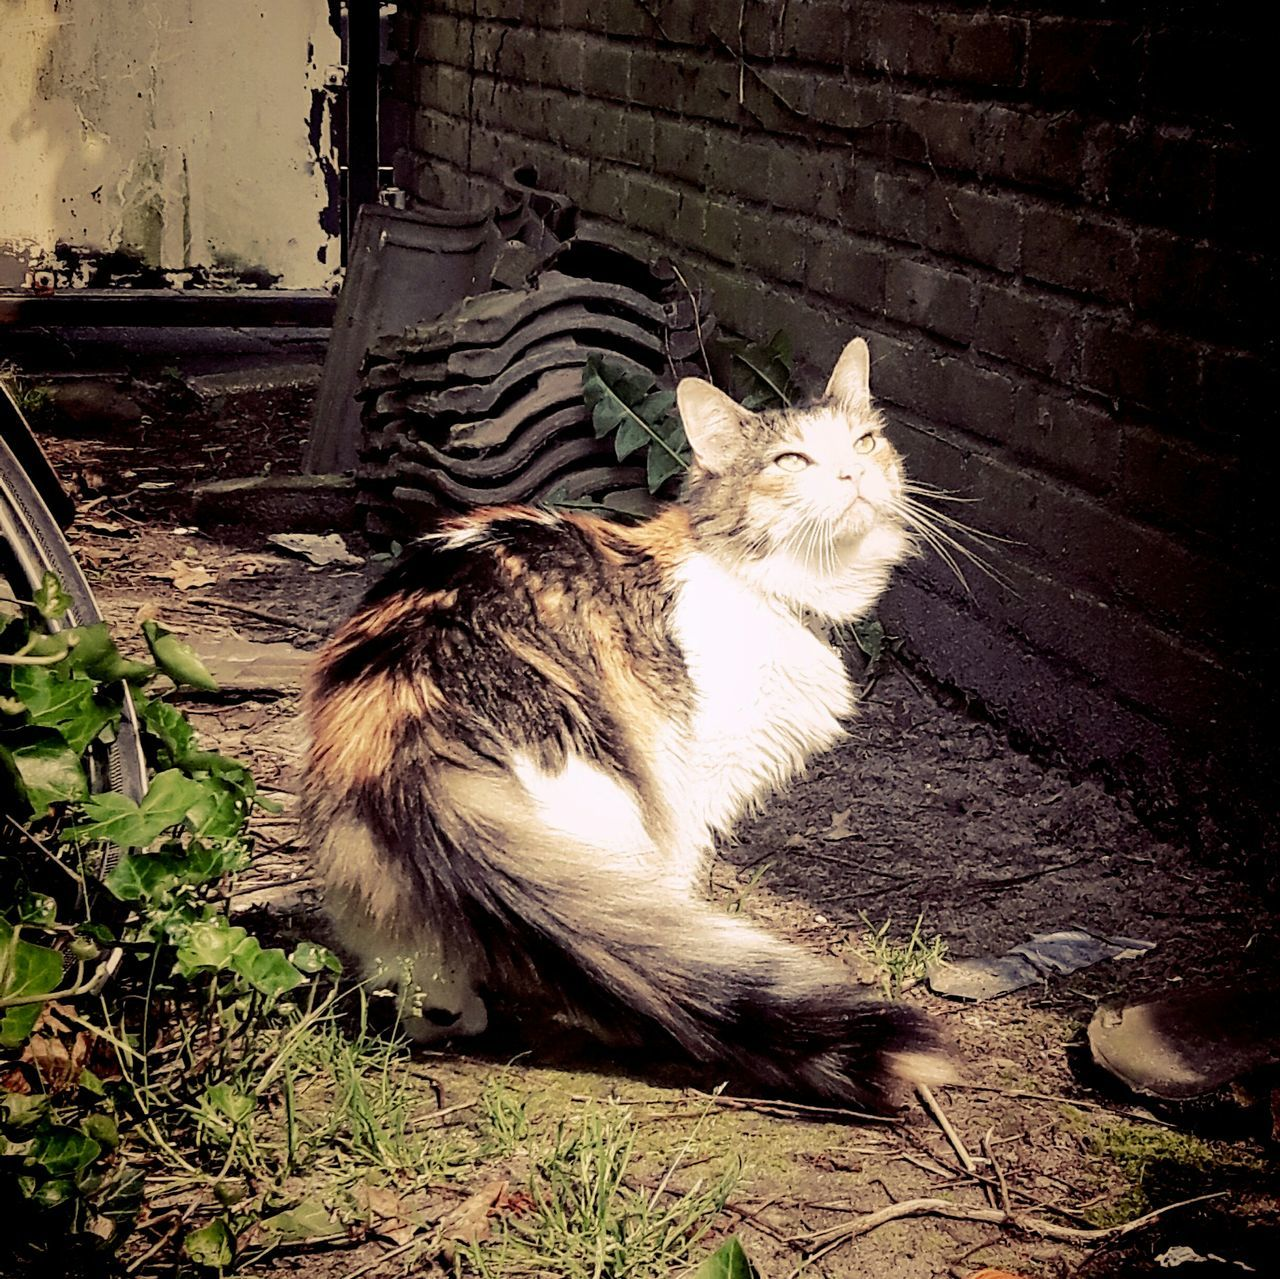 Domestic Cat Animal Themes Pets One Animal Cat Feline Domestic Animals Mammal Day No People Outdoors Sitting Nature Close-up Photograph Sun Discovering Fun Cat Lovers Live For The Story Cats Creativity Cats Of EyeEm Photography Traveling